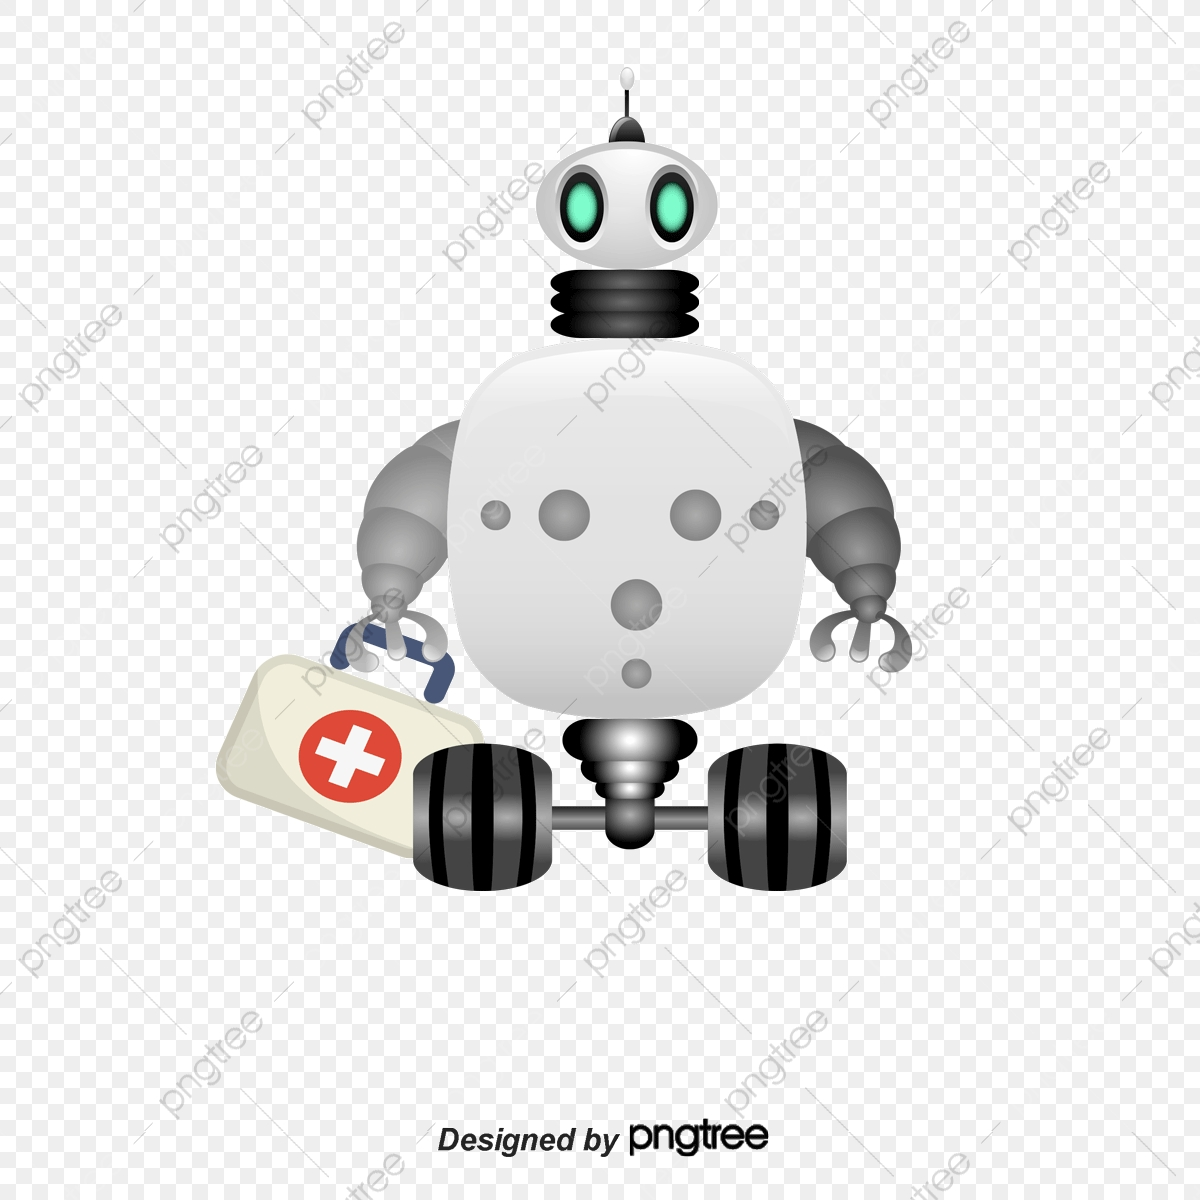 White doctors hospital png. Clipart doctor robot